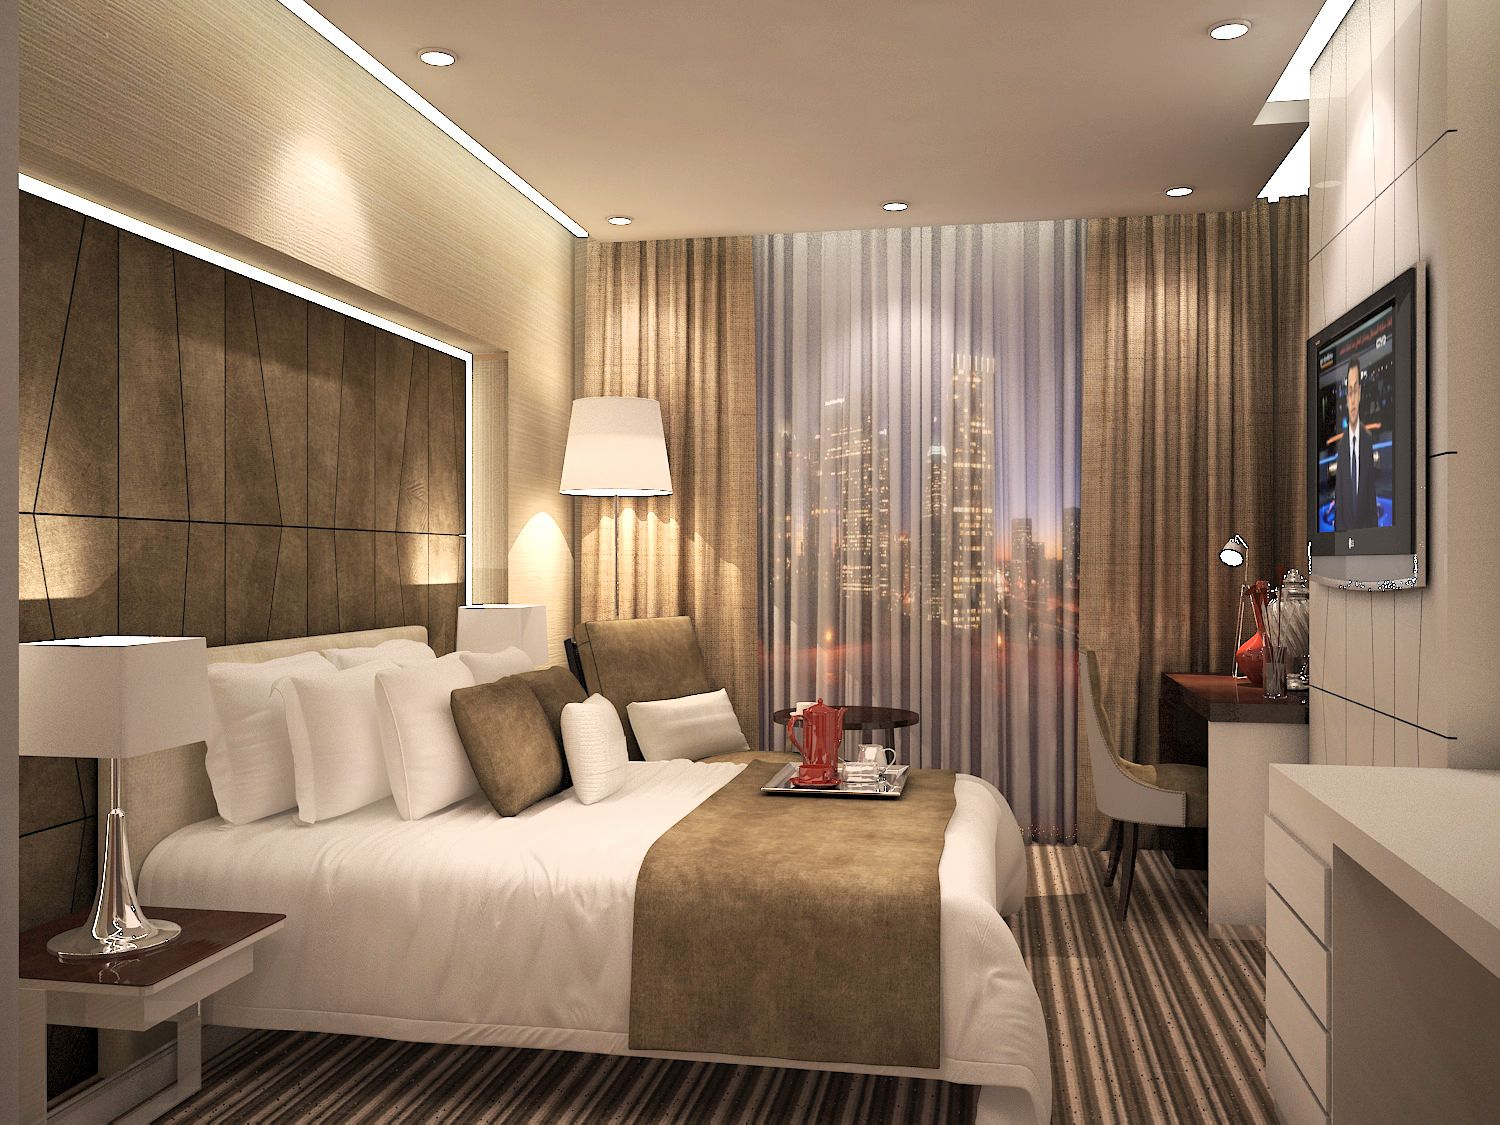 Hotel Decoration Design Image Result For Hotel Room Bedroom Room Interior